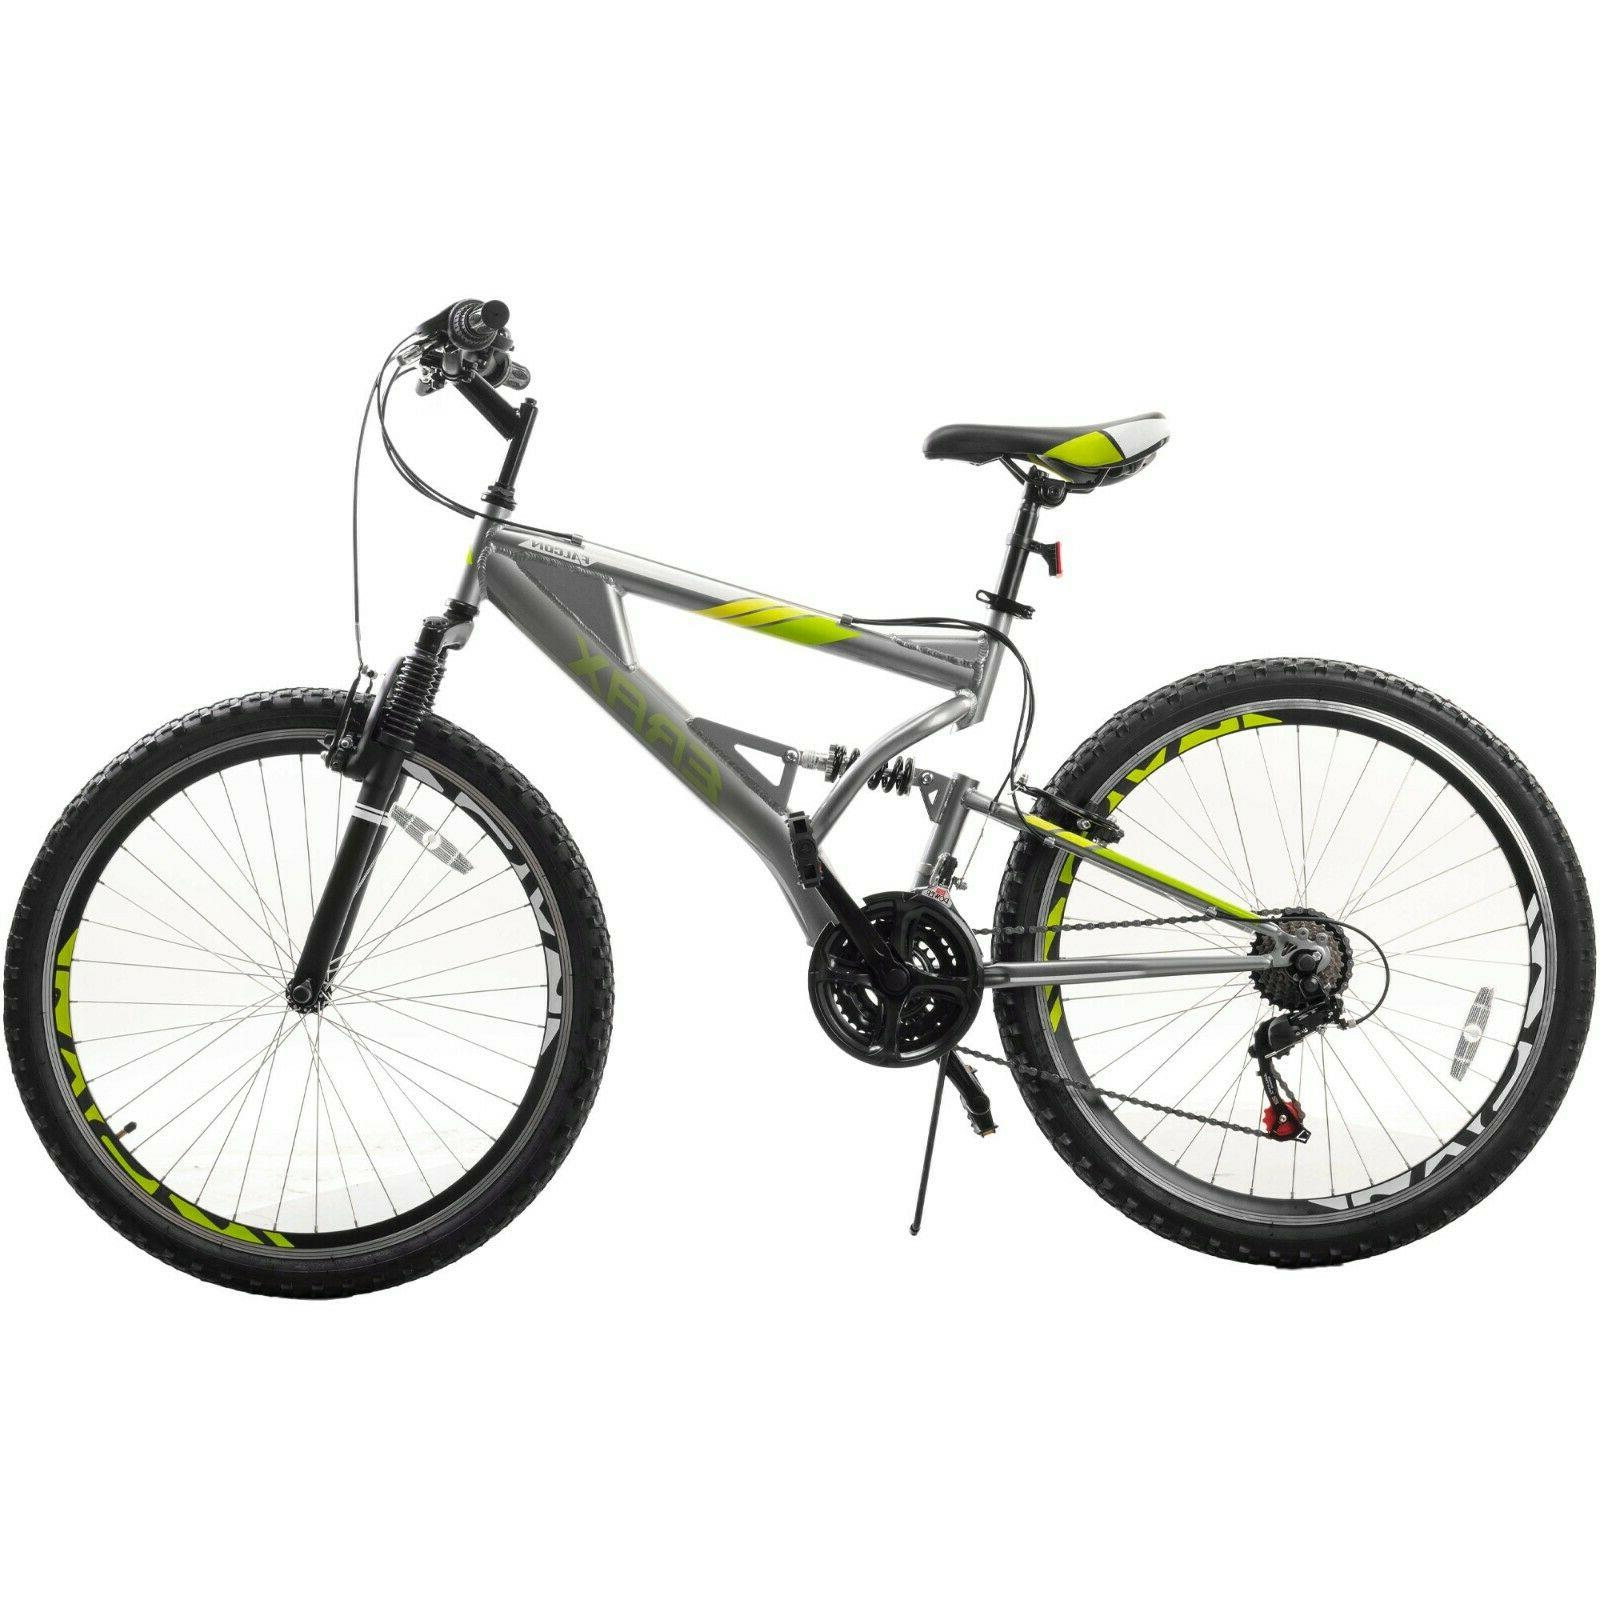 Mountain Bike Outdoor Bicycle 26 inch Full Suspension 21-Spe